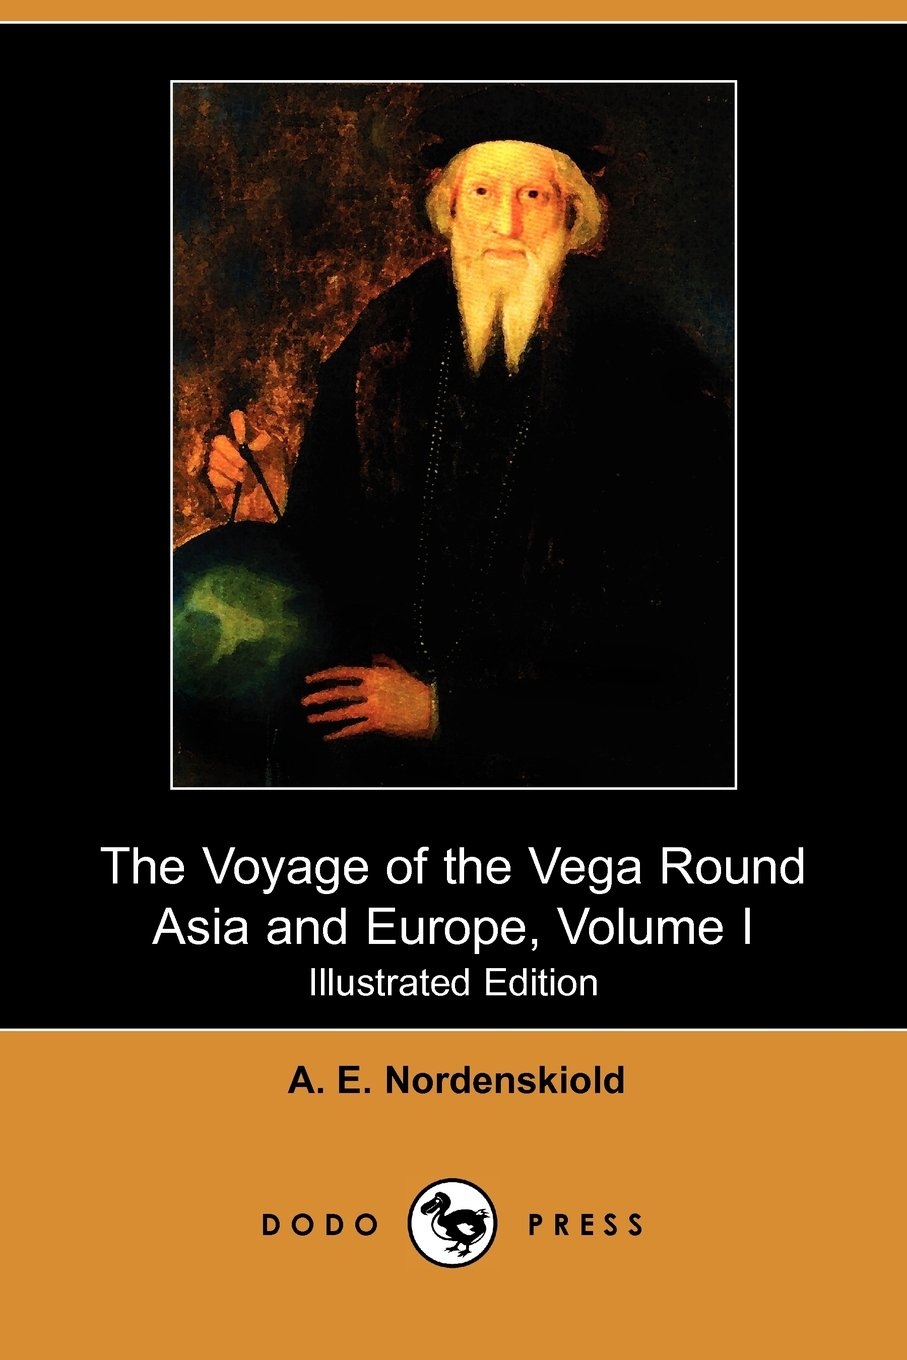 Download The Voyage of the Vega Round Asia and Europe, Volume I (Illustrated Edition) (Dodo Press) pdf